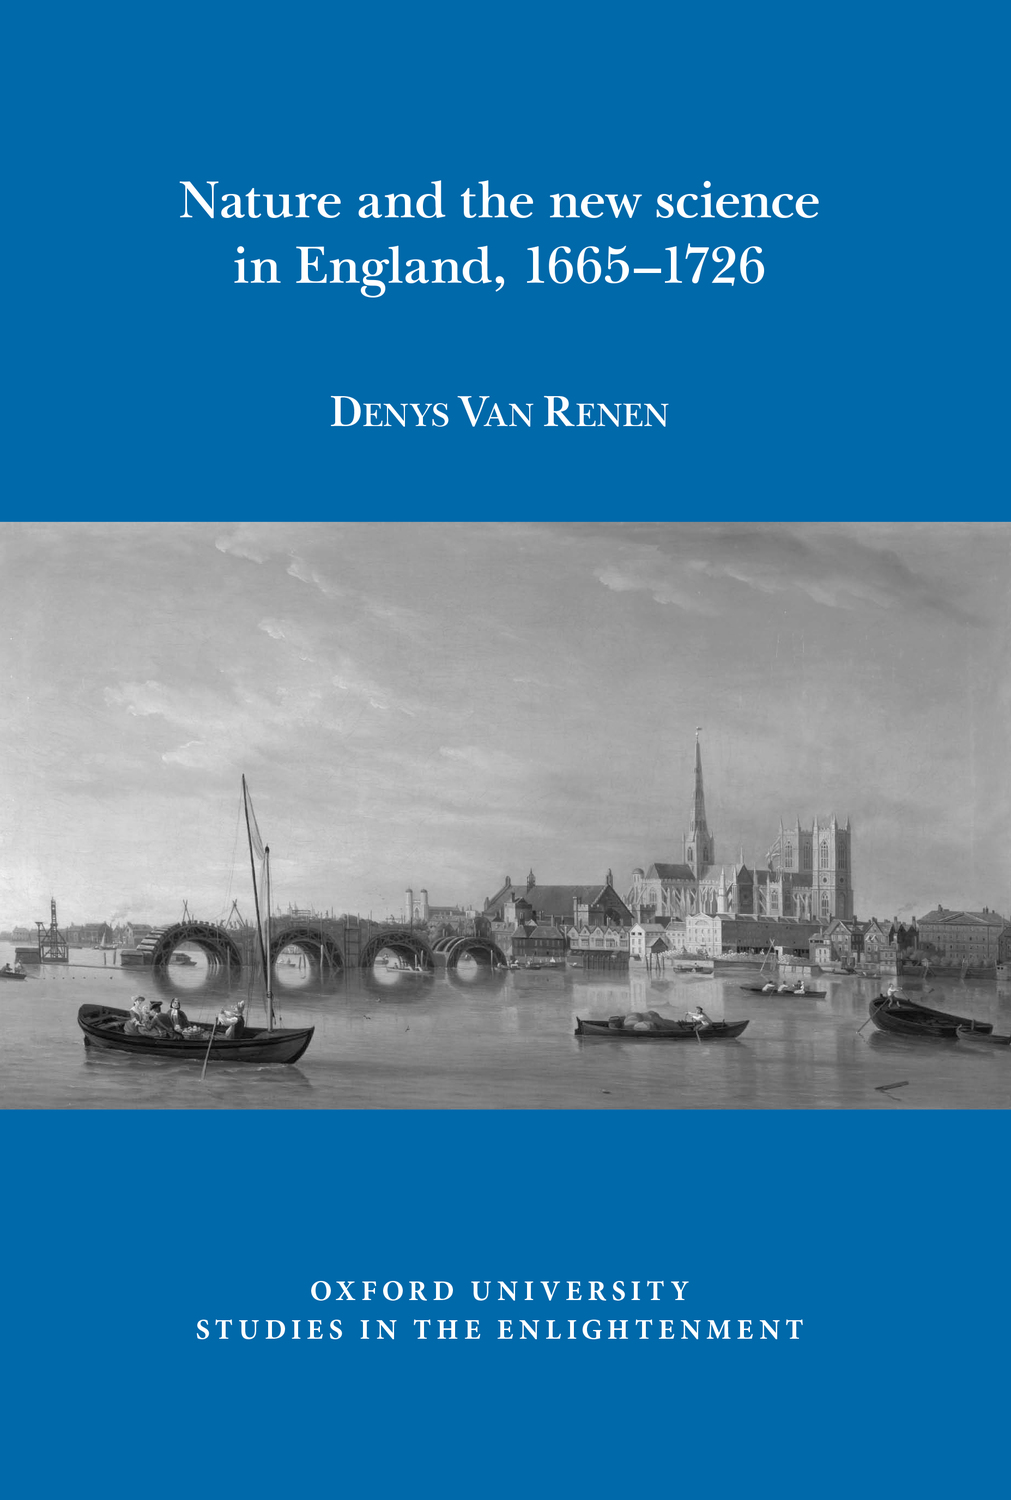 D. Van Renen, Nature and the New Science in England, 1665-1726